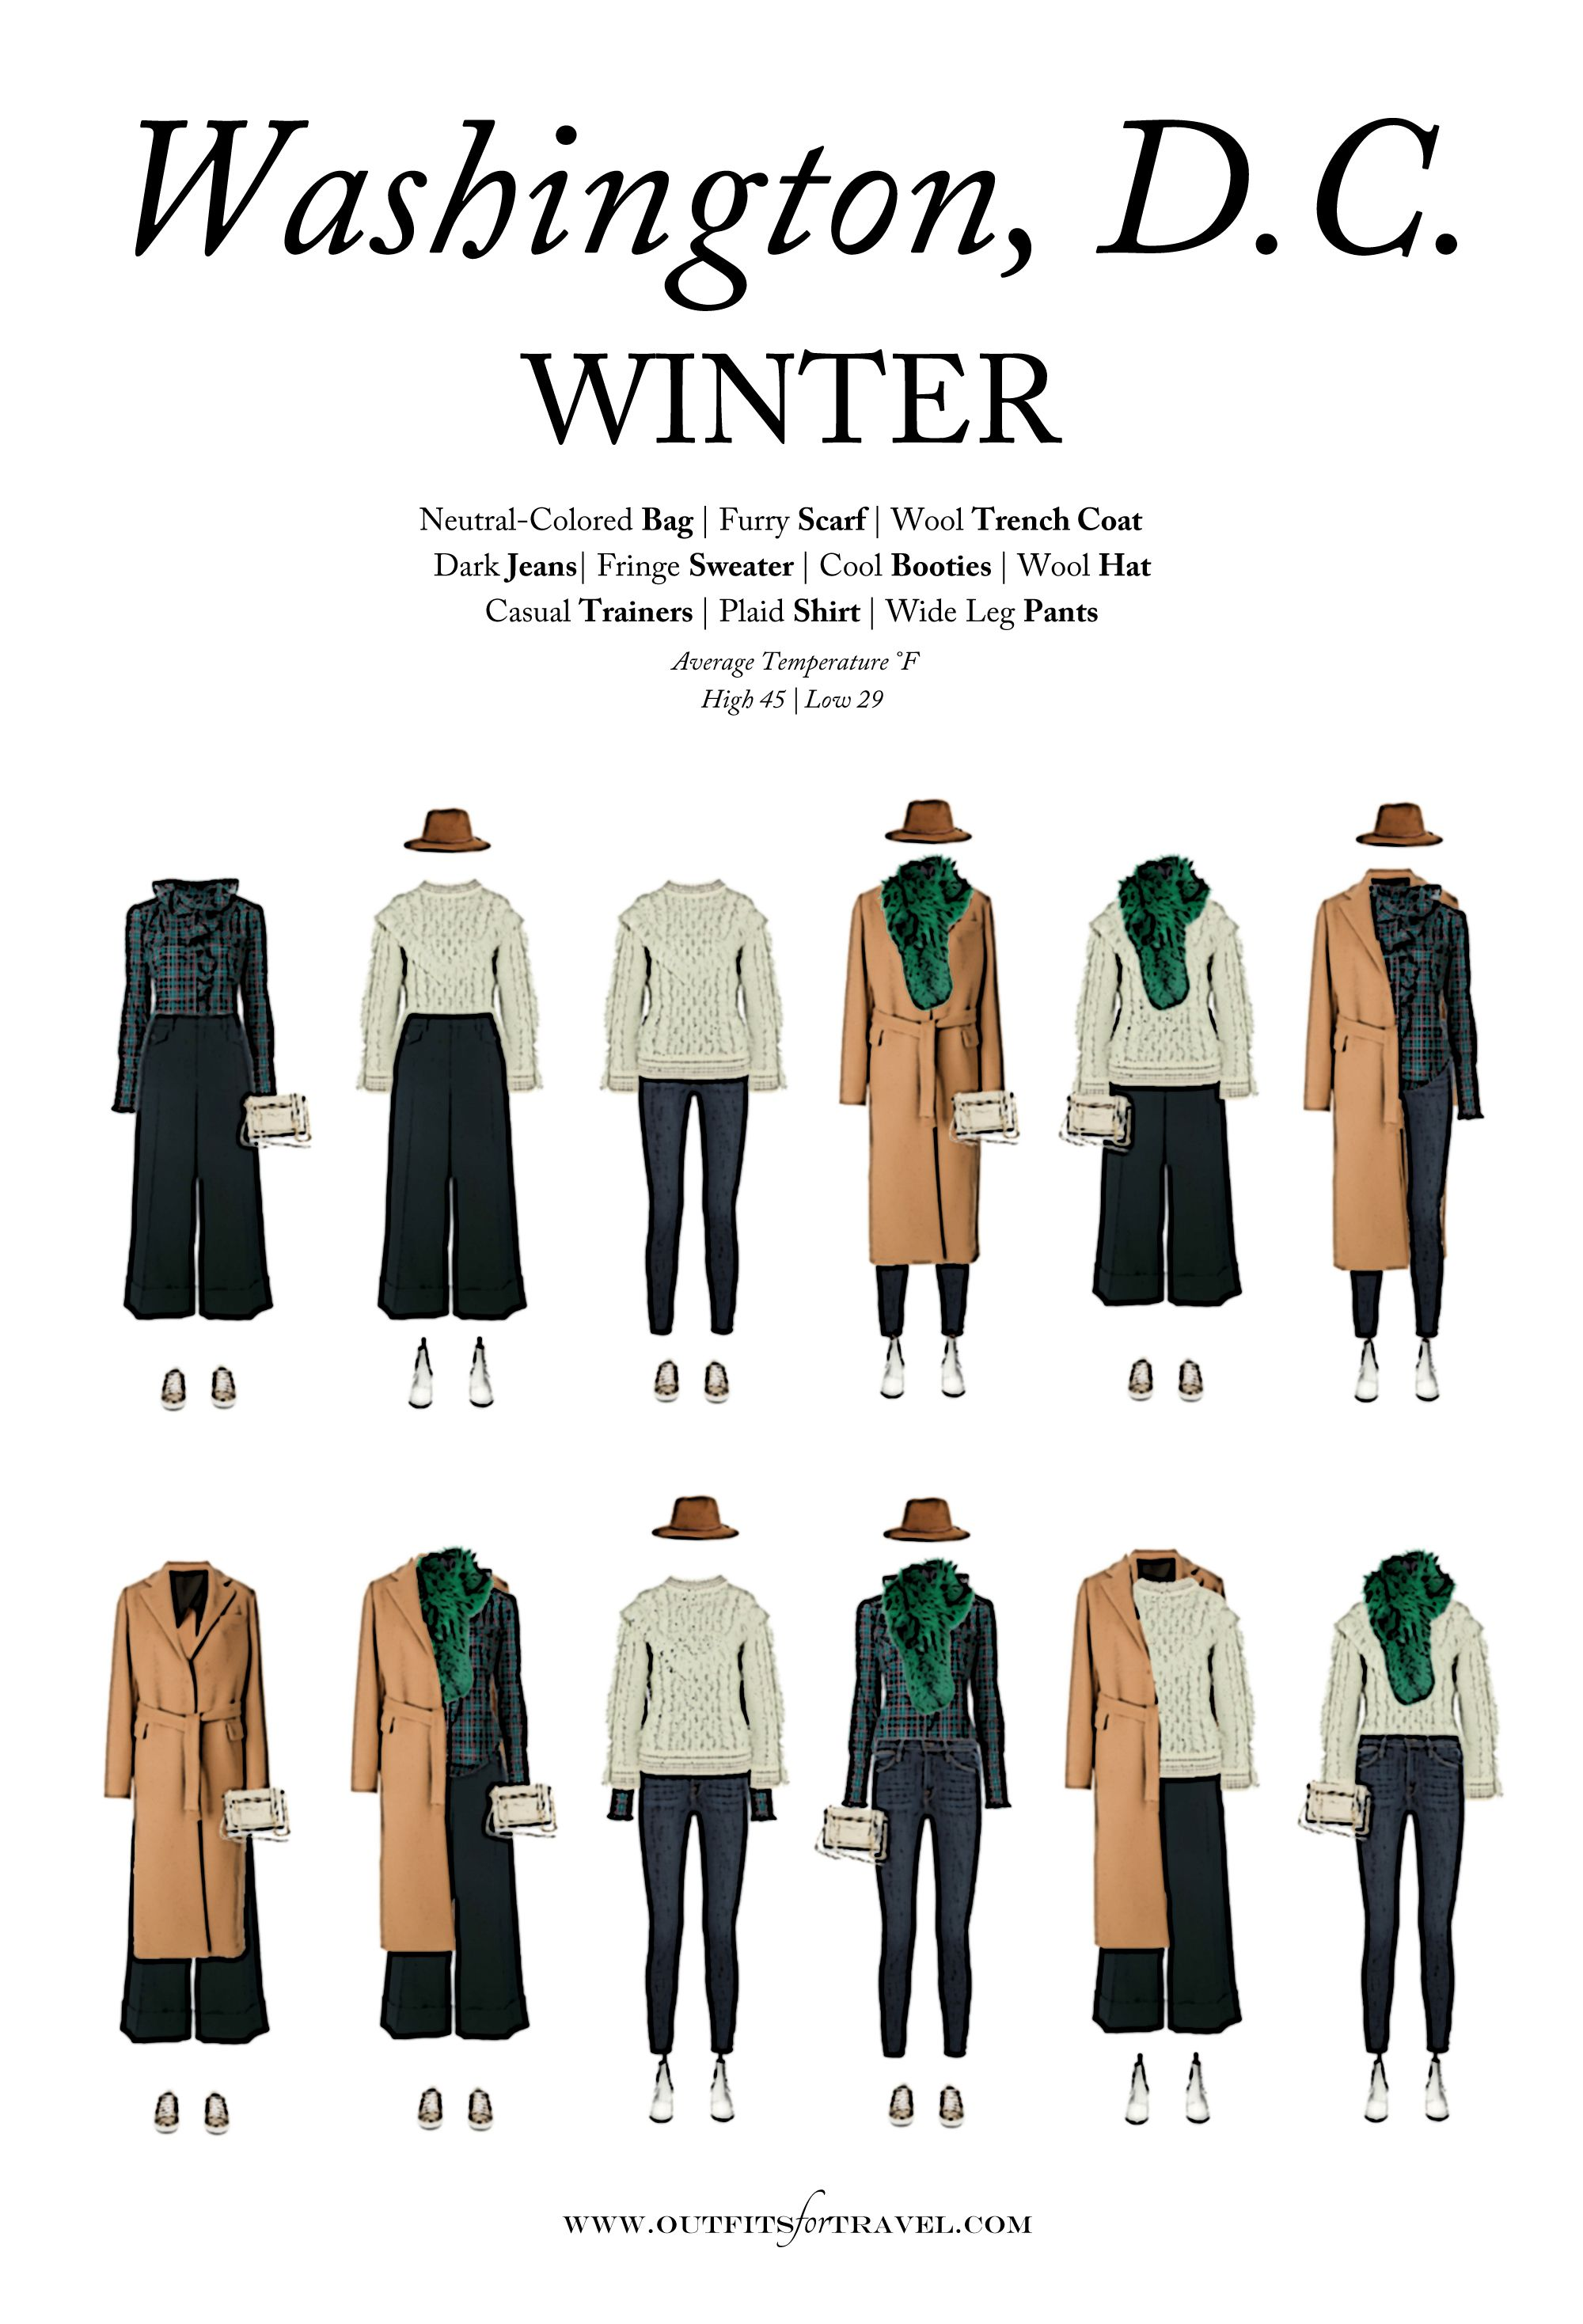 What To Wear To Washington Dc This Winter Travel Outfits For December January Or Fe Fashion Capsule Wardrobe Winter Wardrobe Outfits Winter Capsule Wardrobe